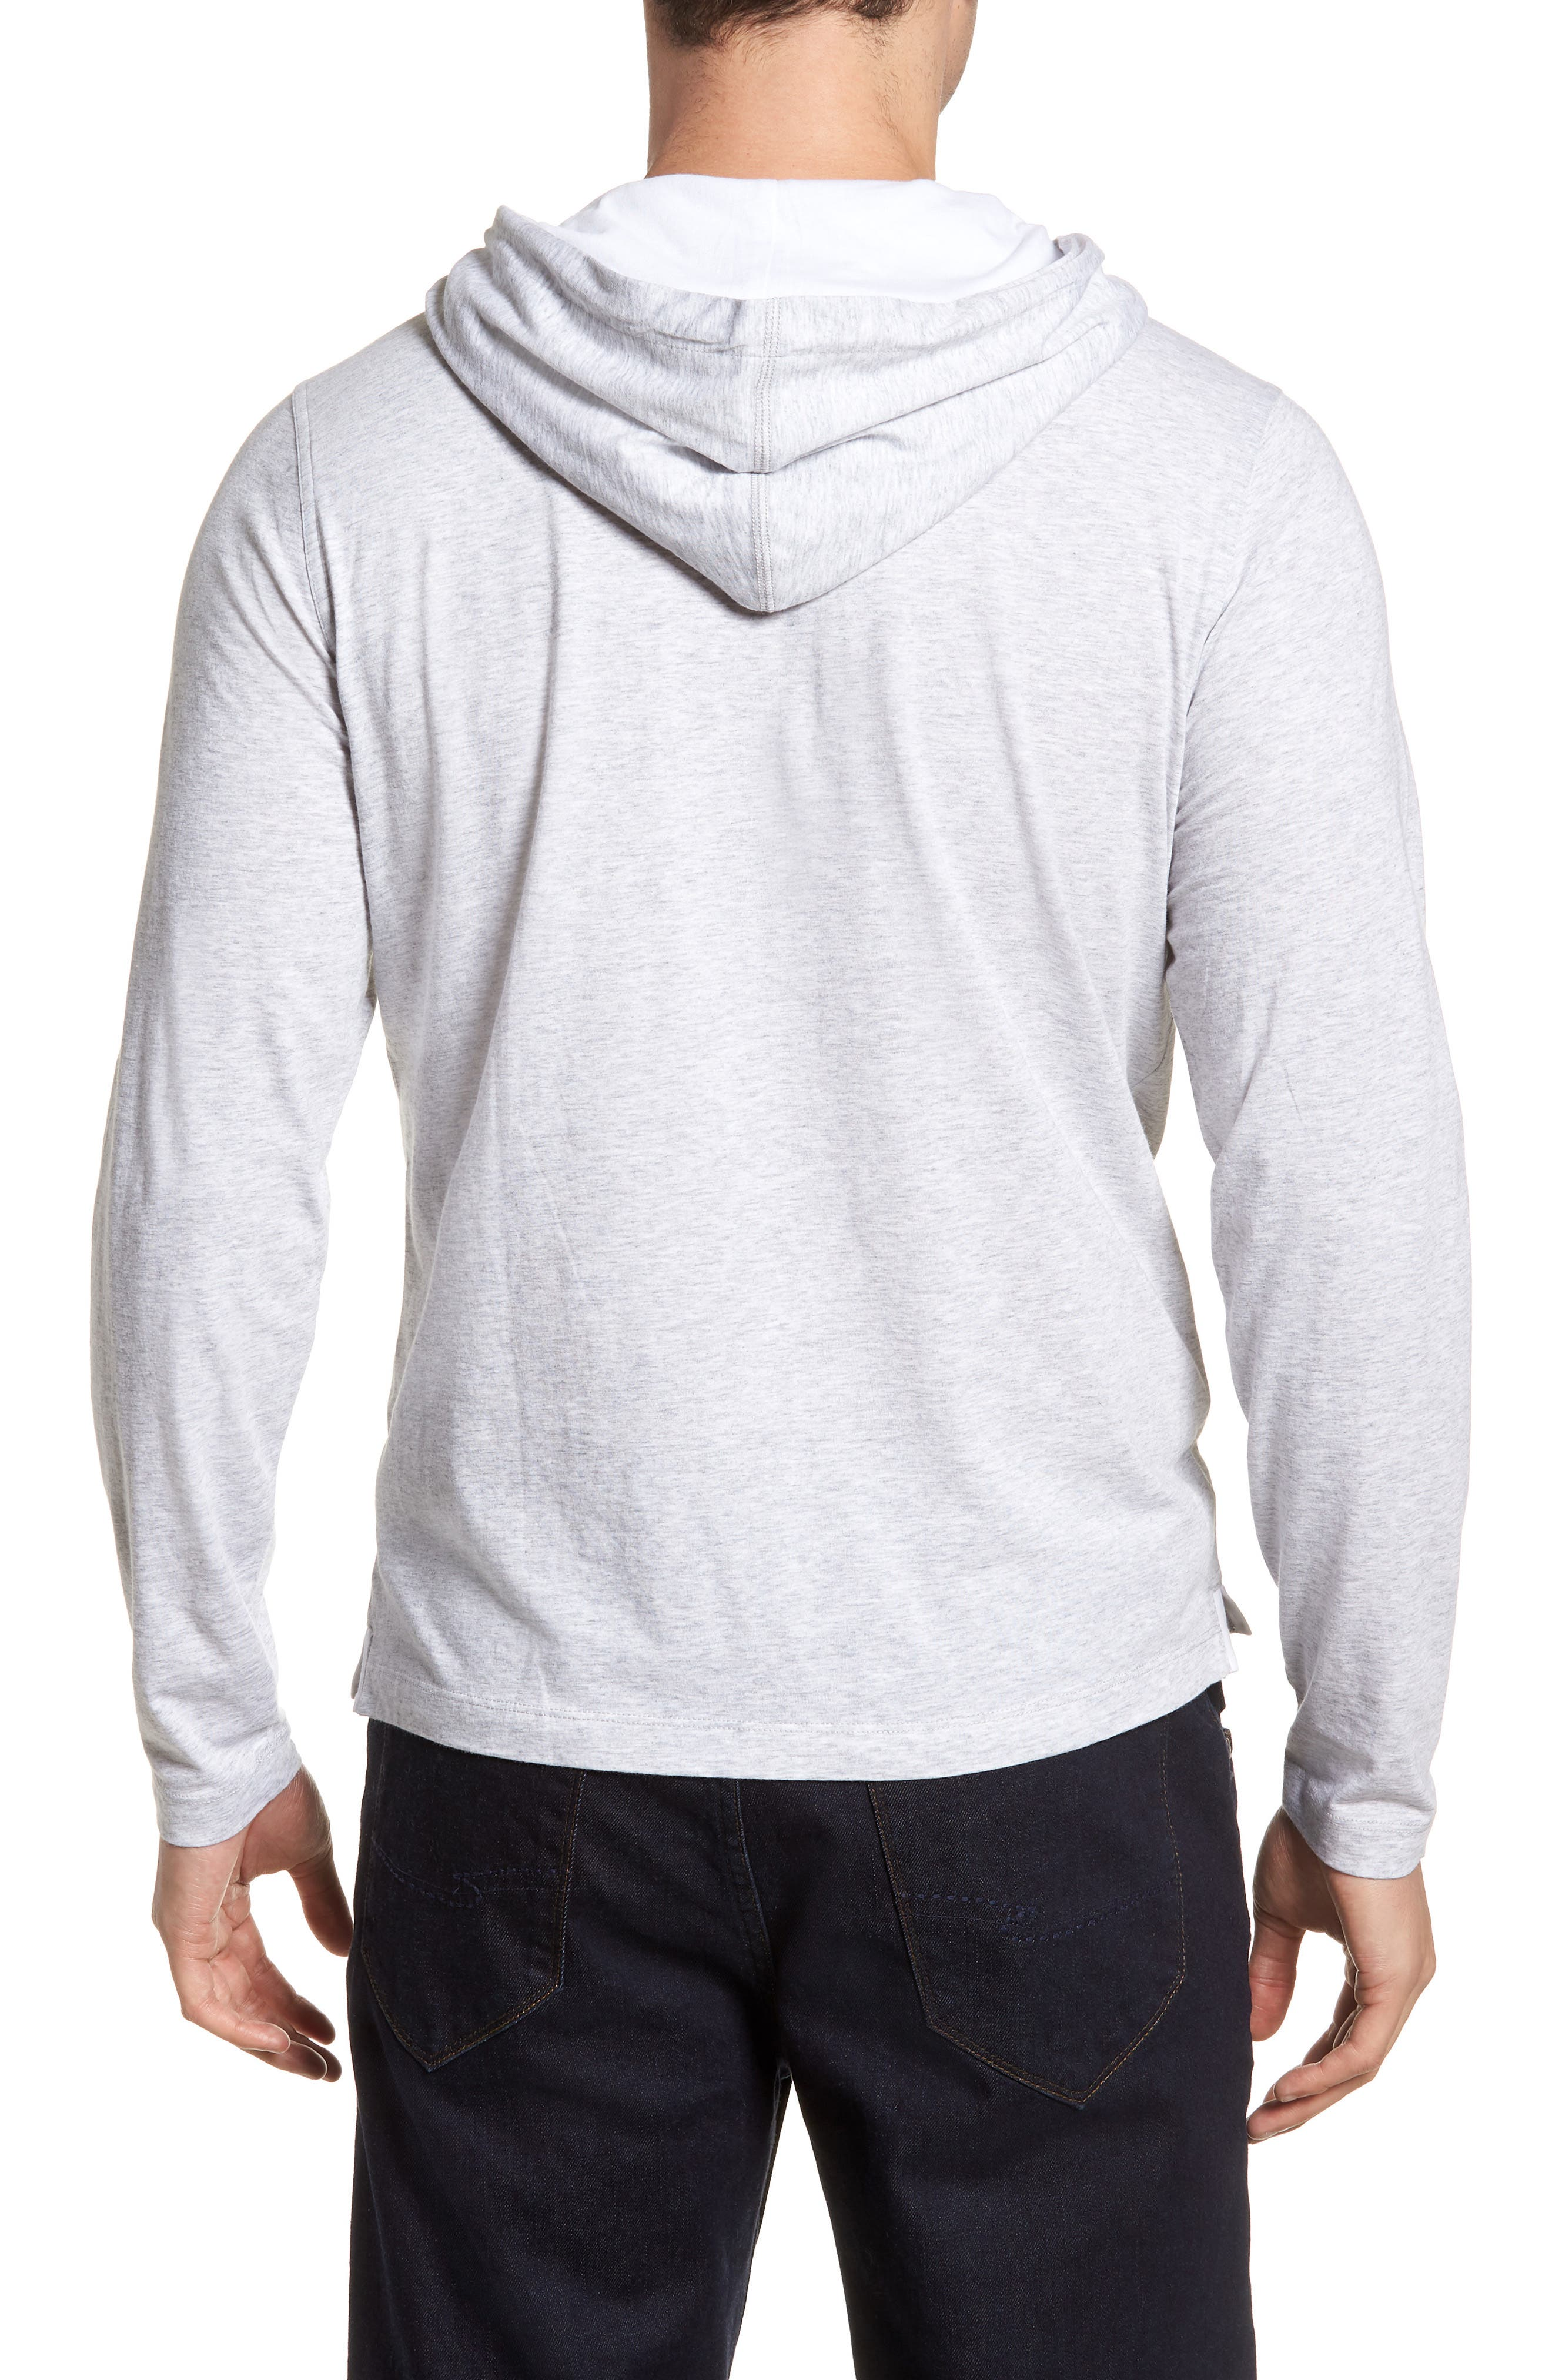 Carl Pullover Hoodie,                             Alternate thumbnail 2, color,                             Dove Grey